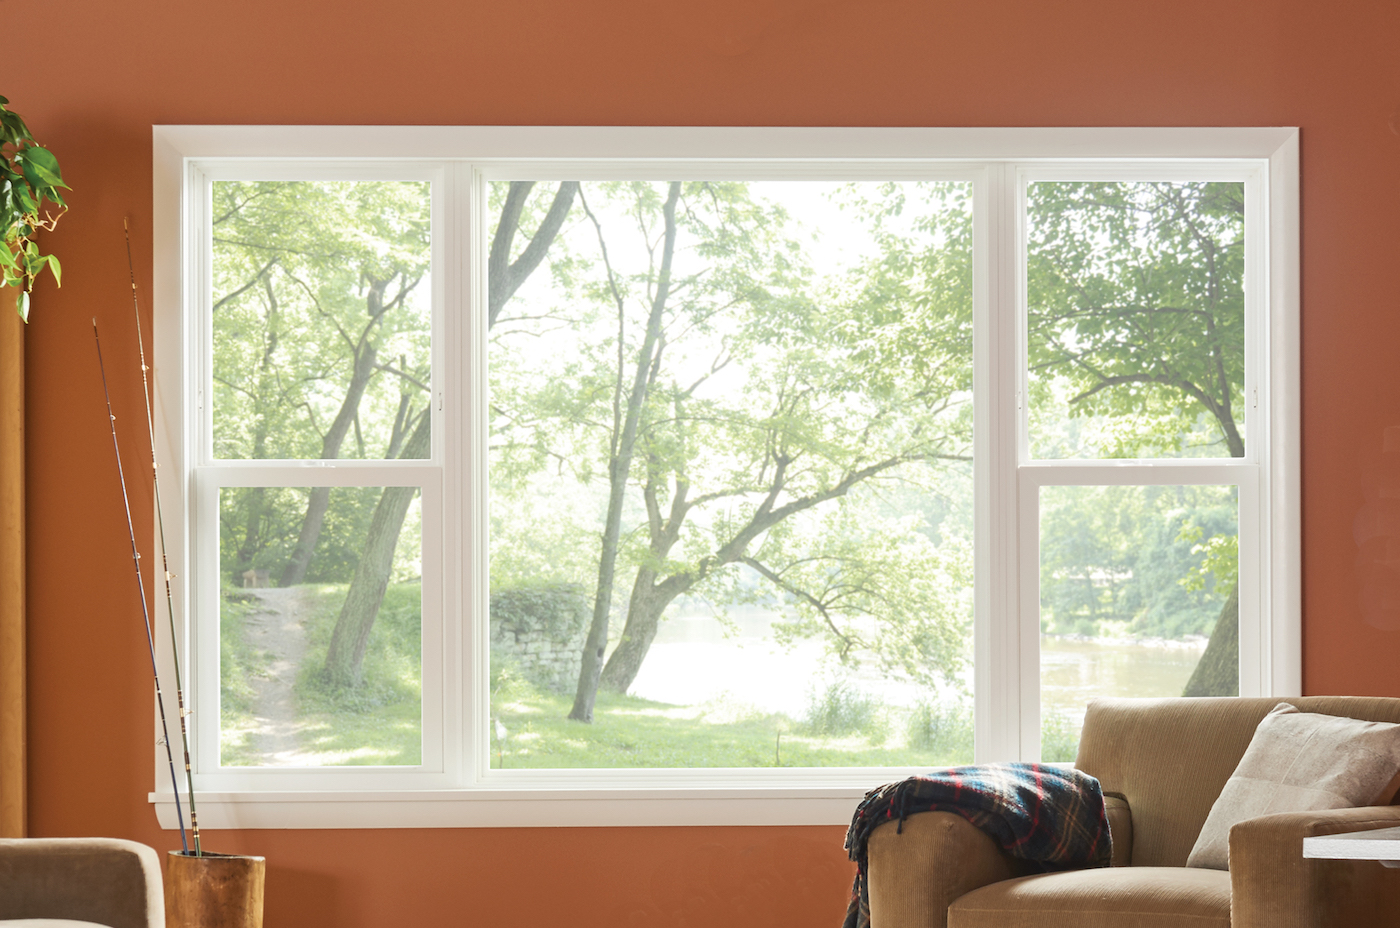 Clear Views Window Product Trends Professional Builder